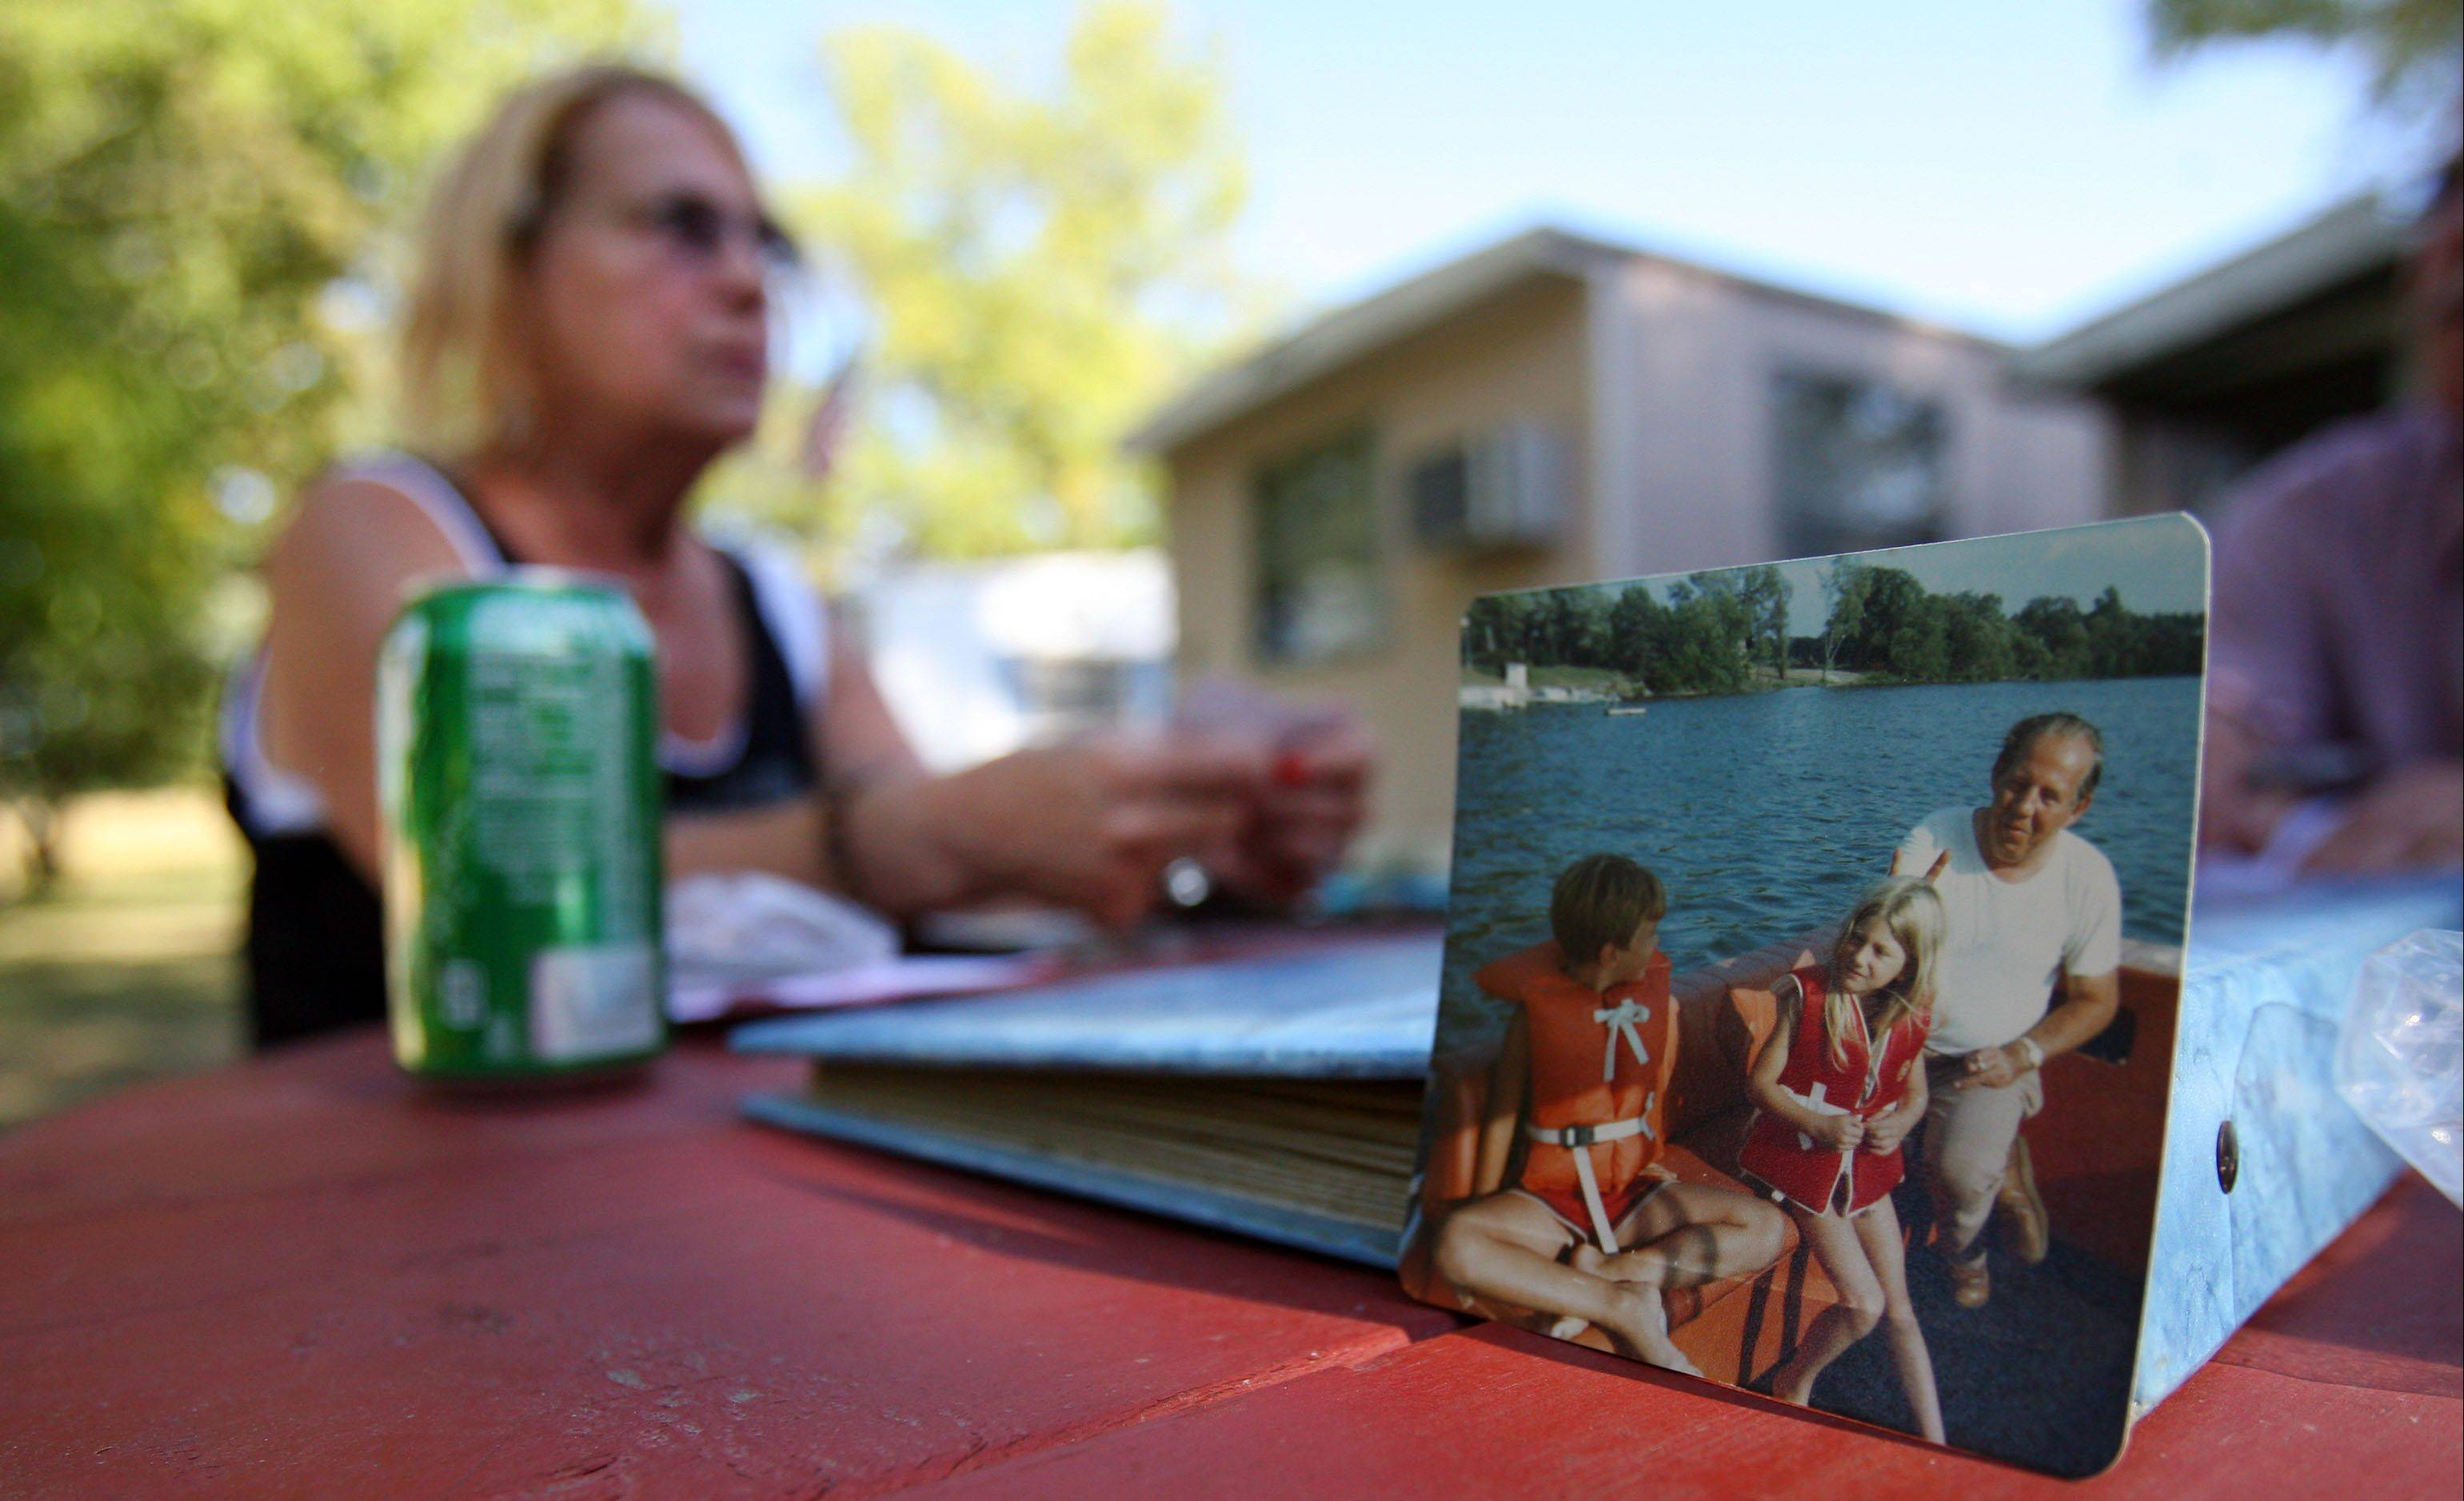 Carol Rychlee of Wilmette reminisces as she looks through old pictures of her life at Lake Marie Camp near Antioch.